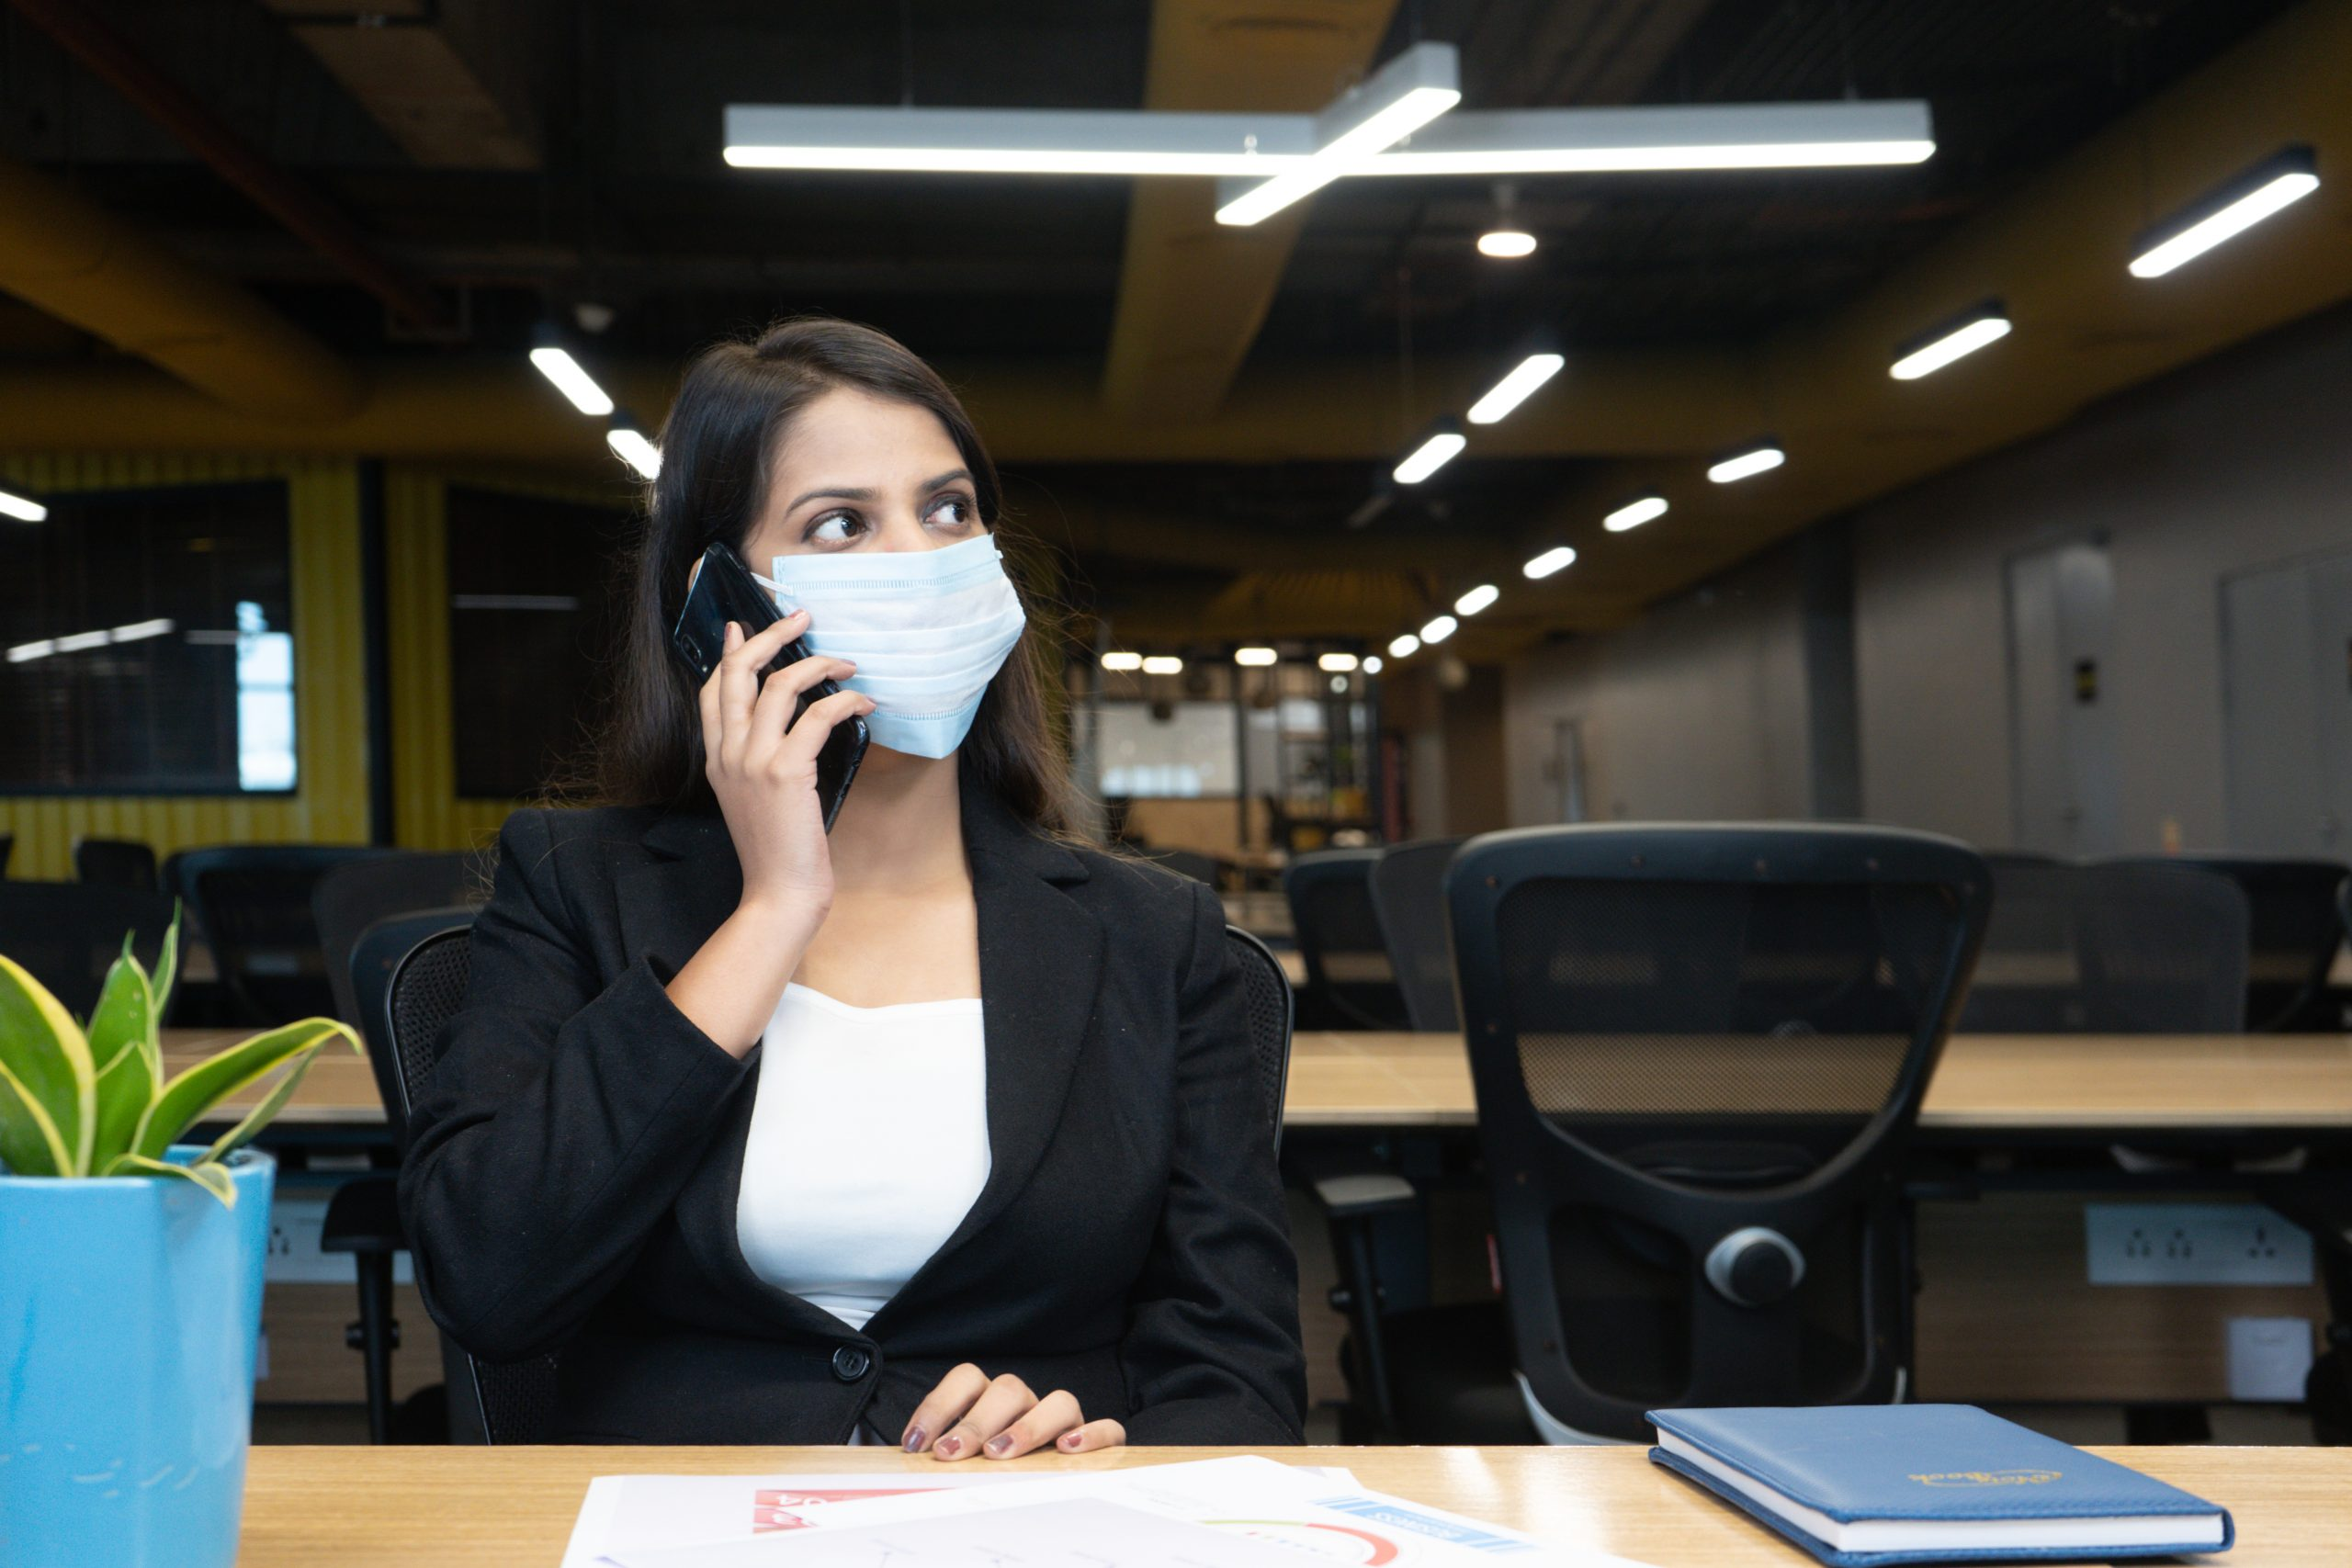 girl with mask talking on phone